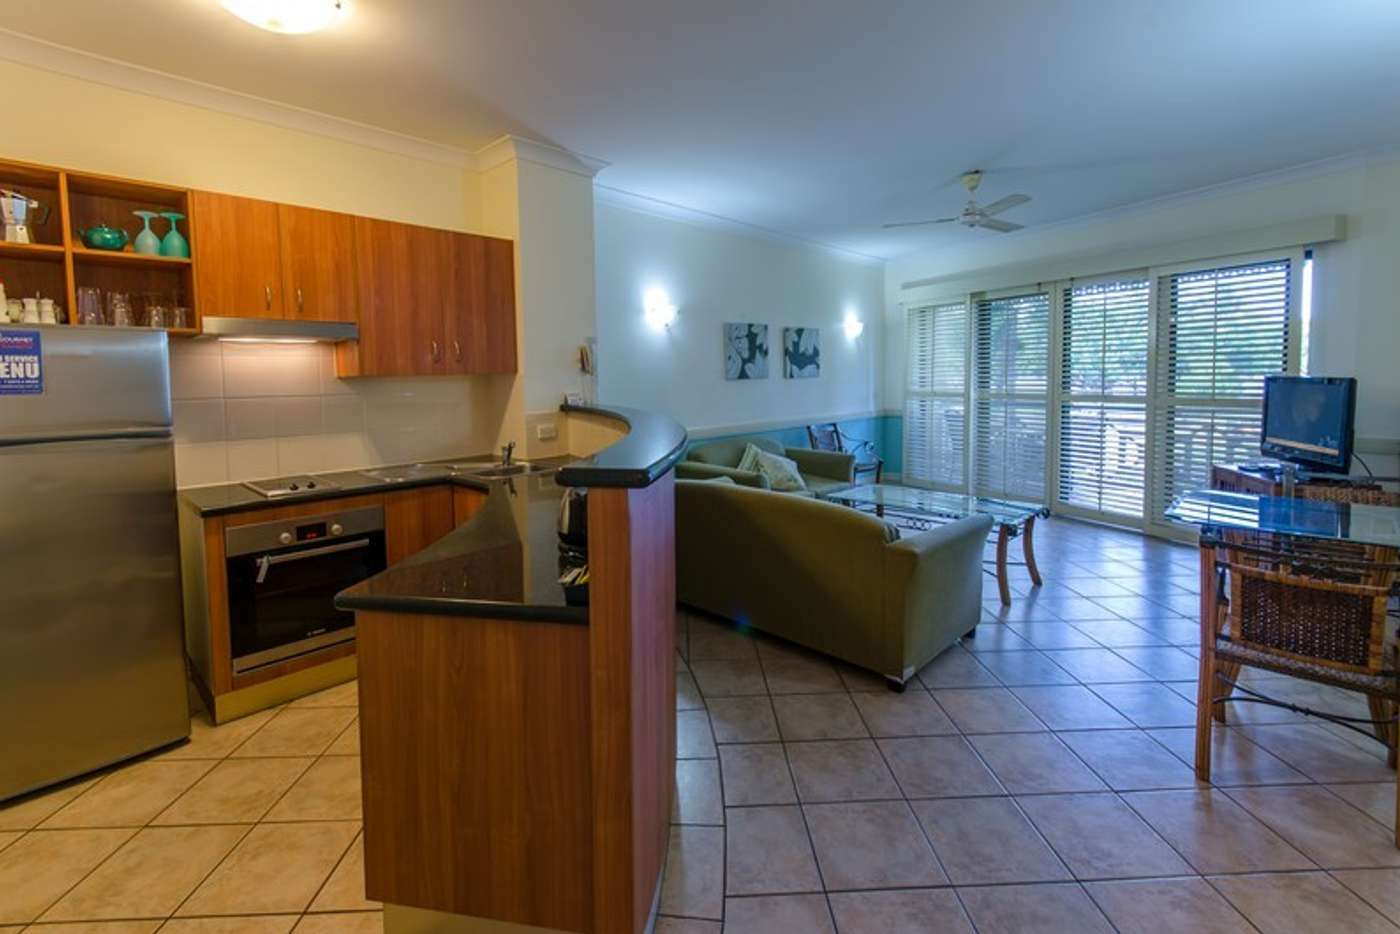 Main view of Homely unit listing, 23/233 Esplanade, Cairns North QLD 4870